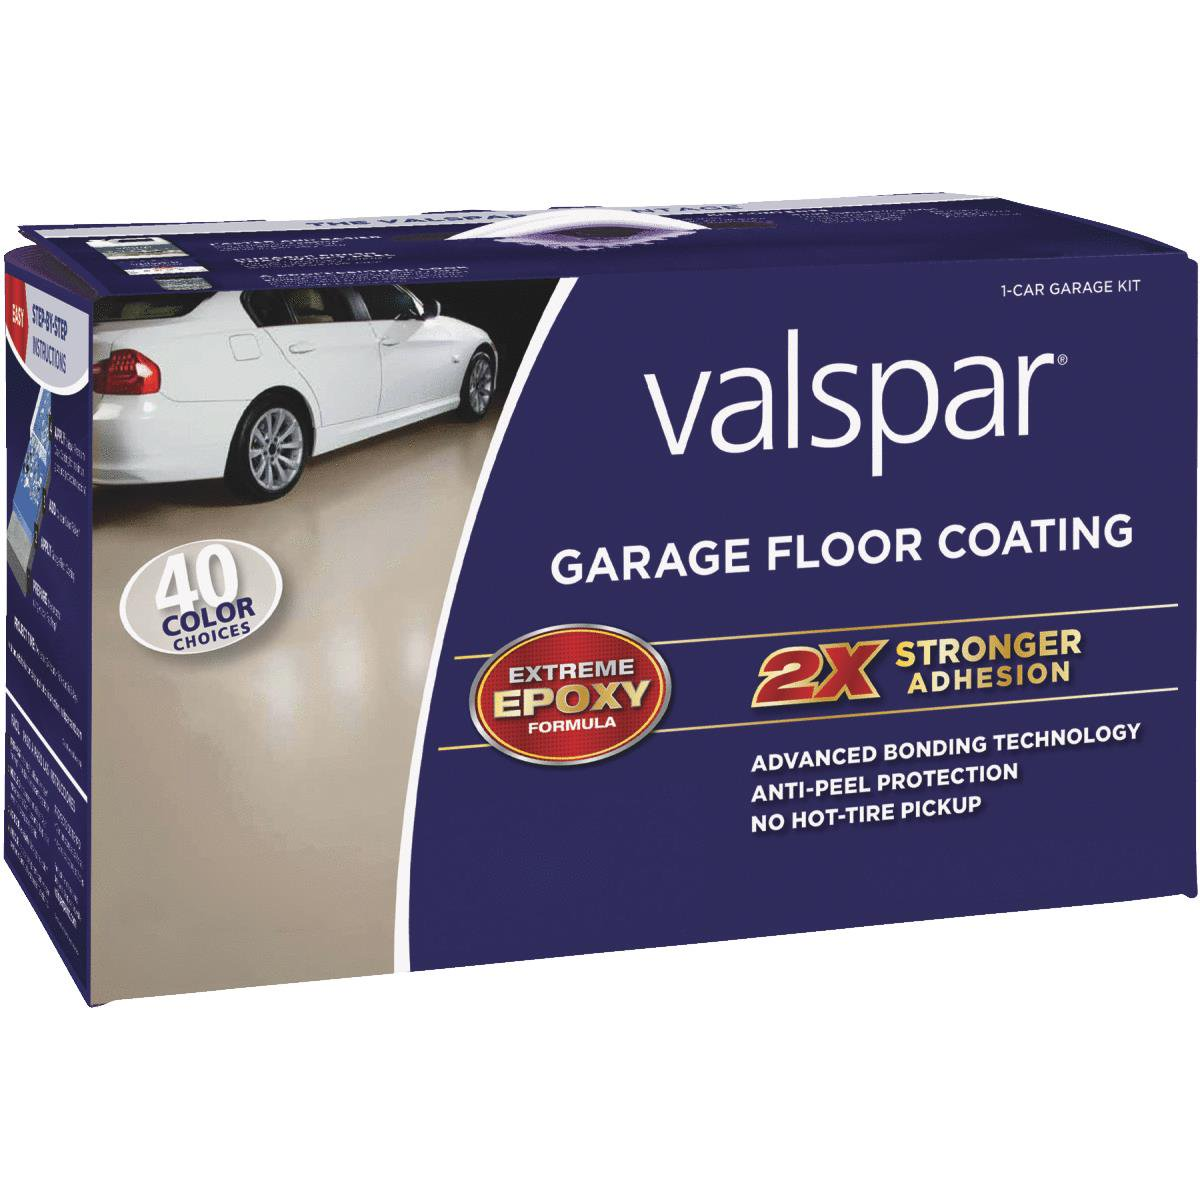 Valspar Low VOC Garage Floor Coating Kit